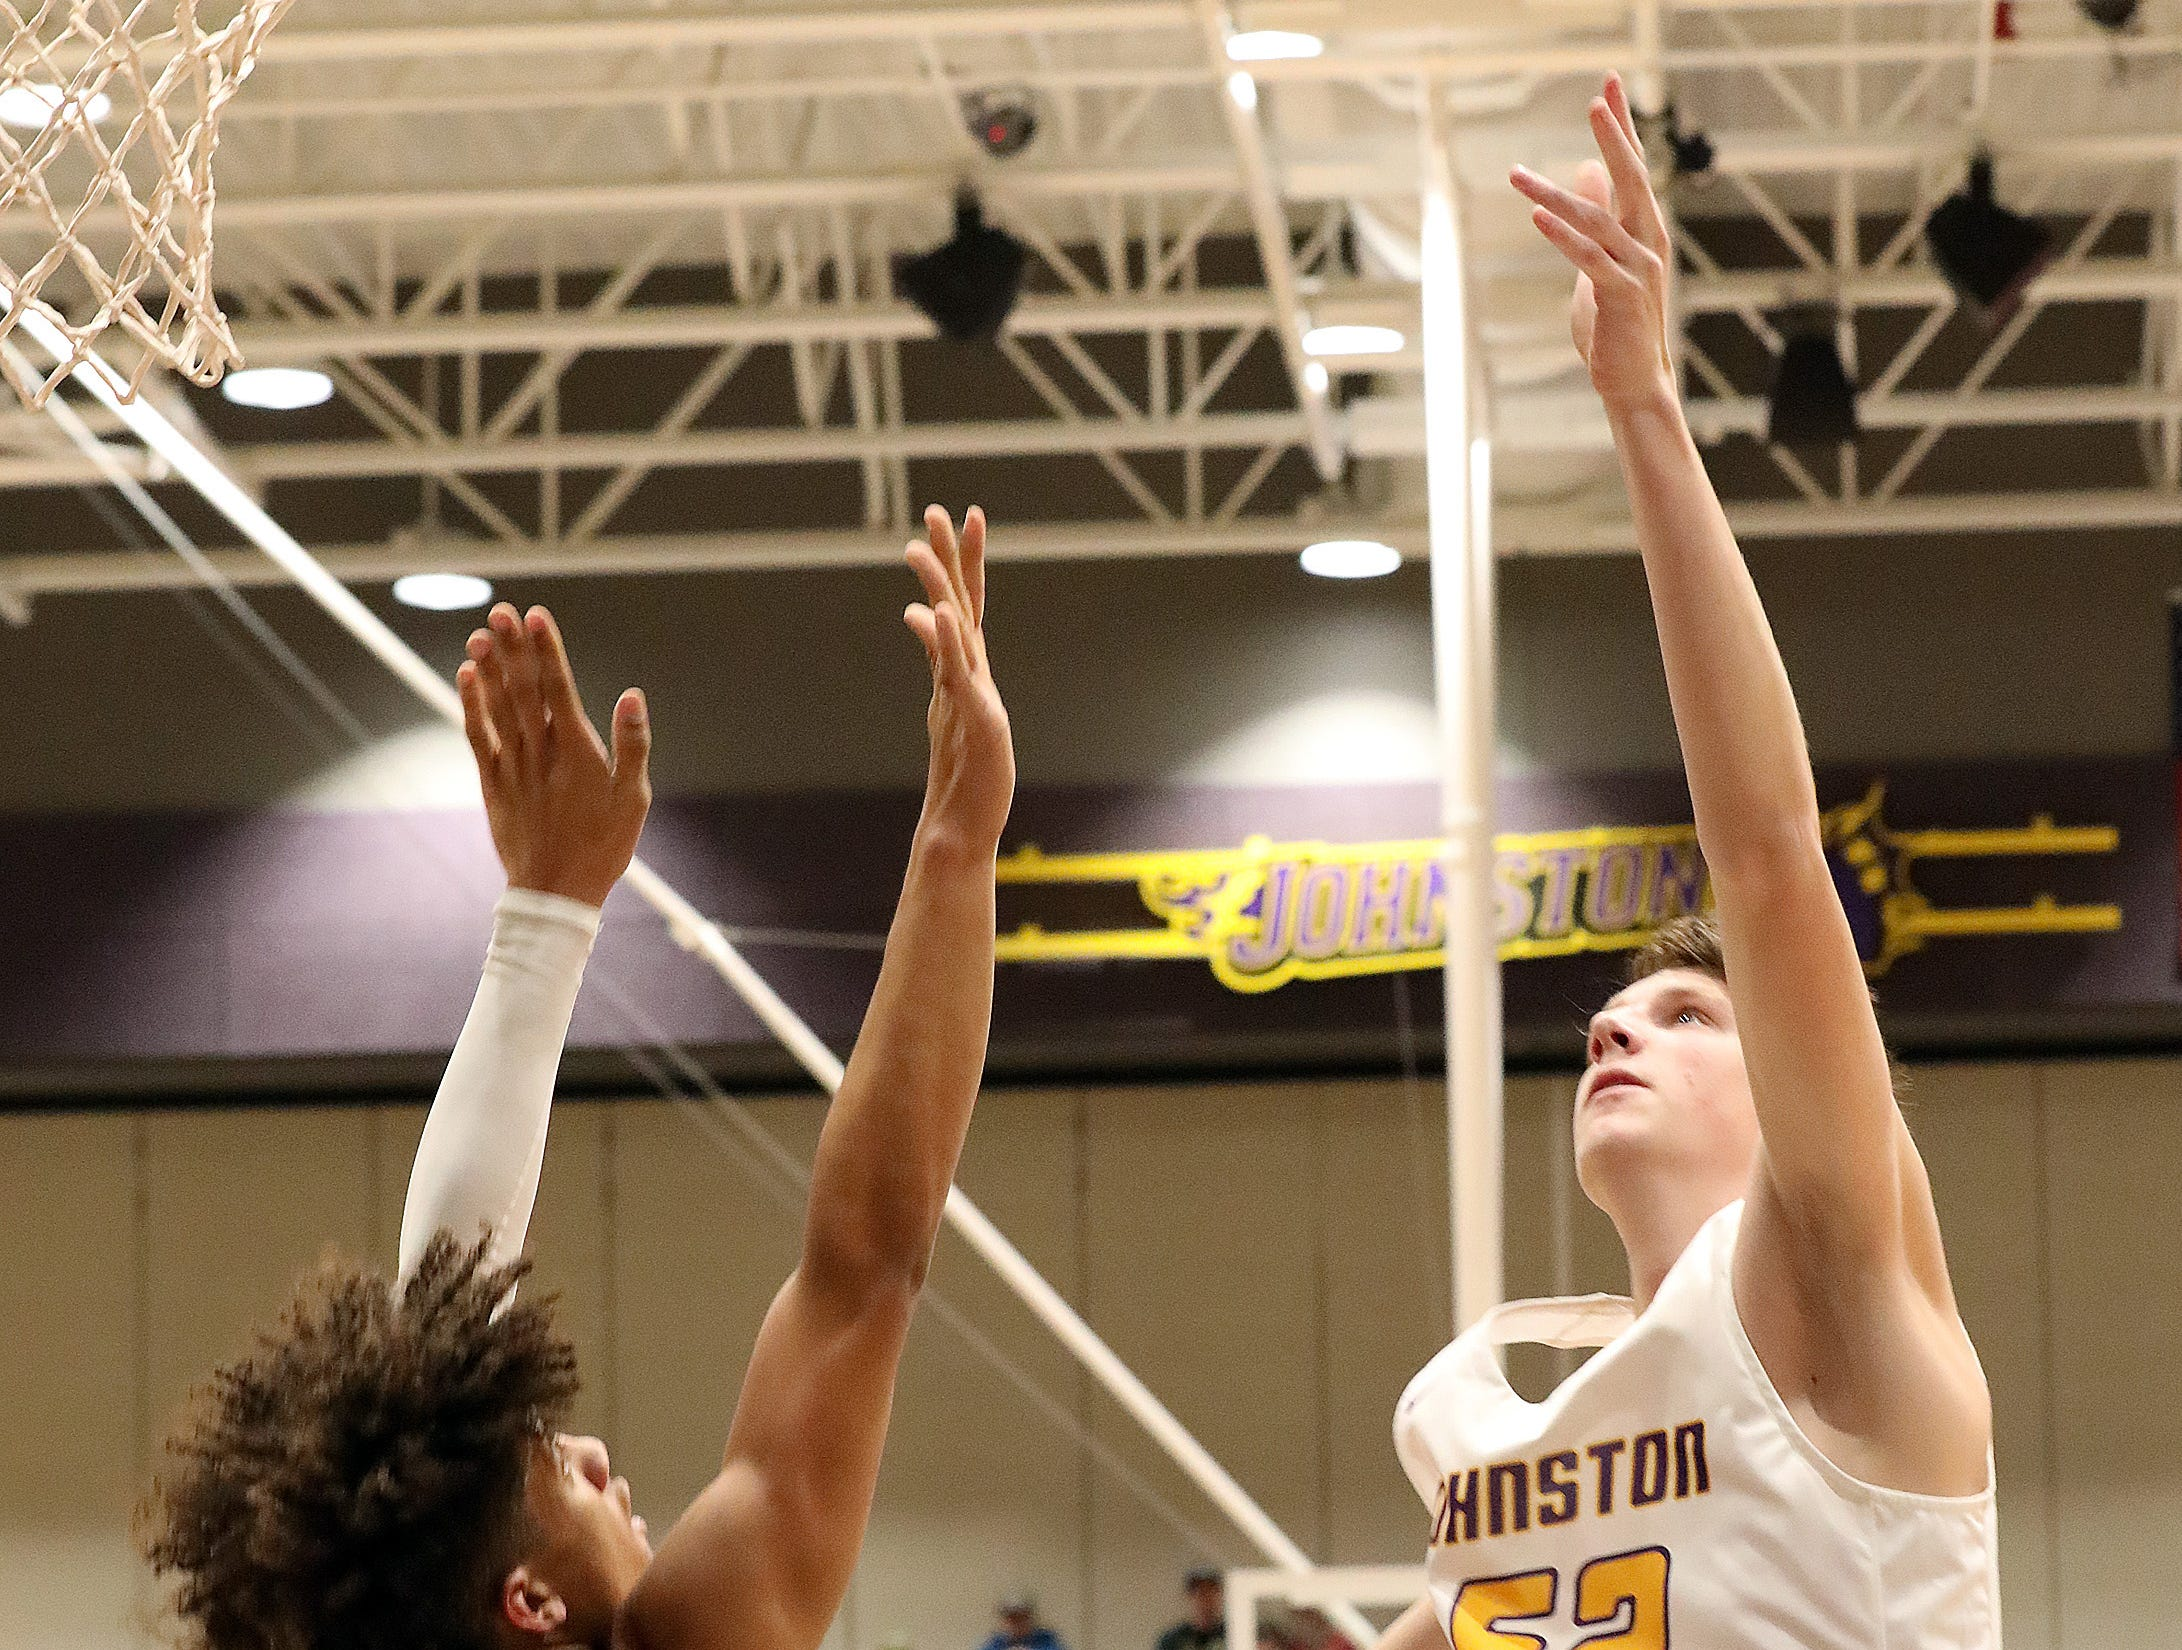 Johnston sophomore Max Roquet scores two points as the Ankeny Hawks compete against the Johnston Dragons in high school basketball on Friday, Friday, Dec. 21, 2018 at Johnston High School.